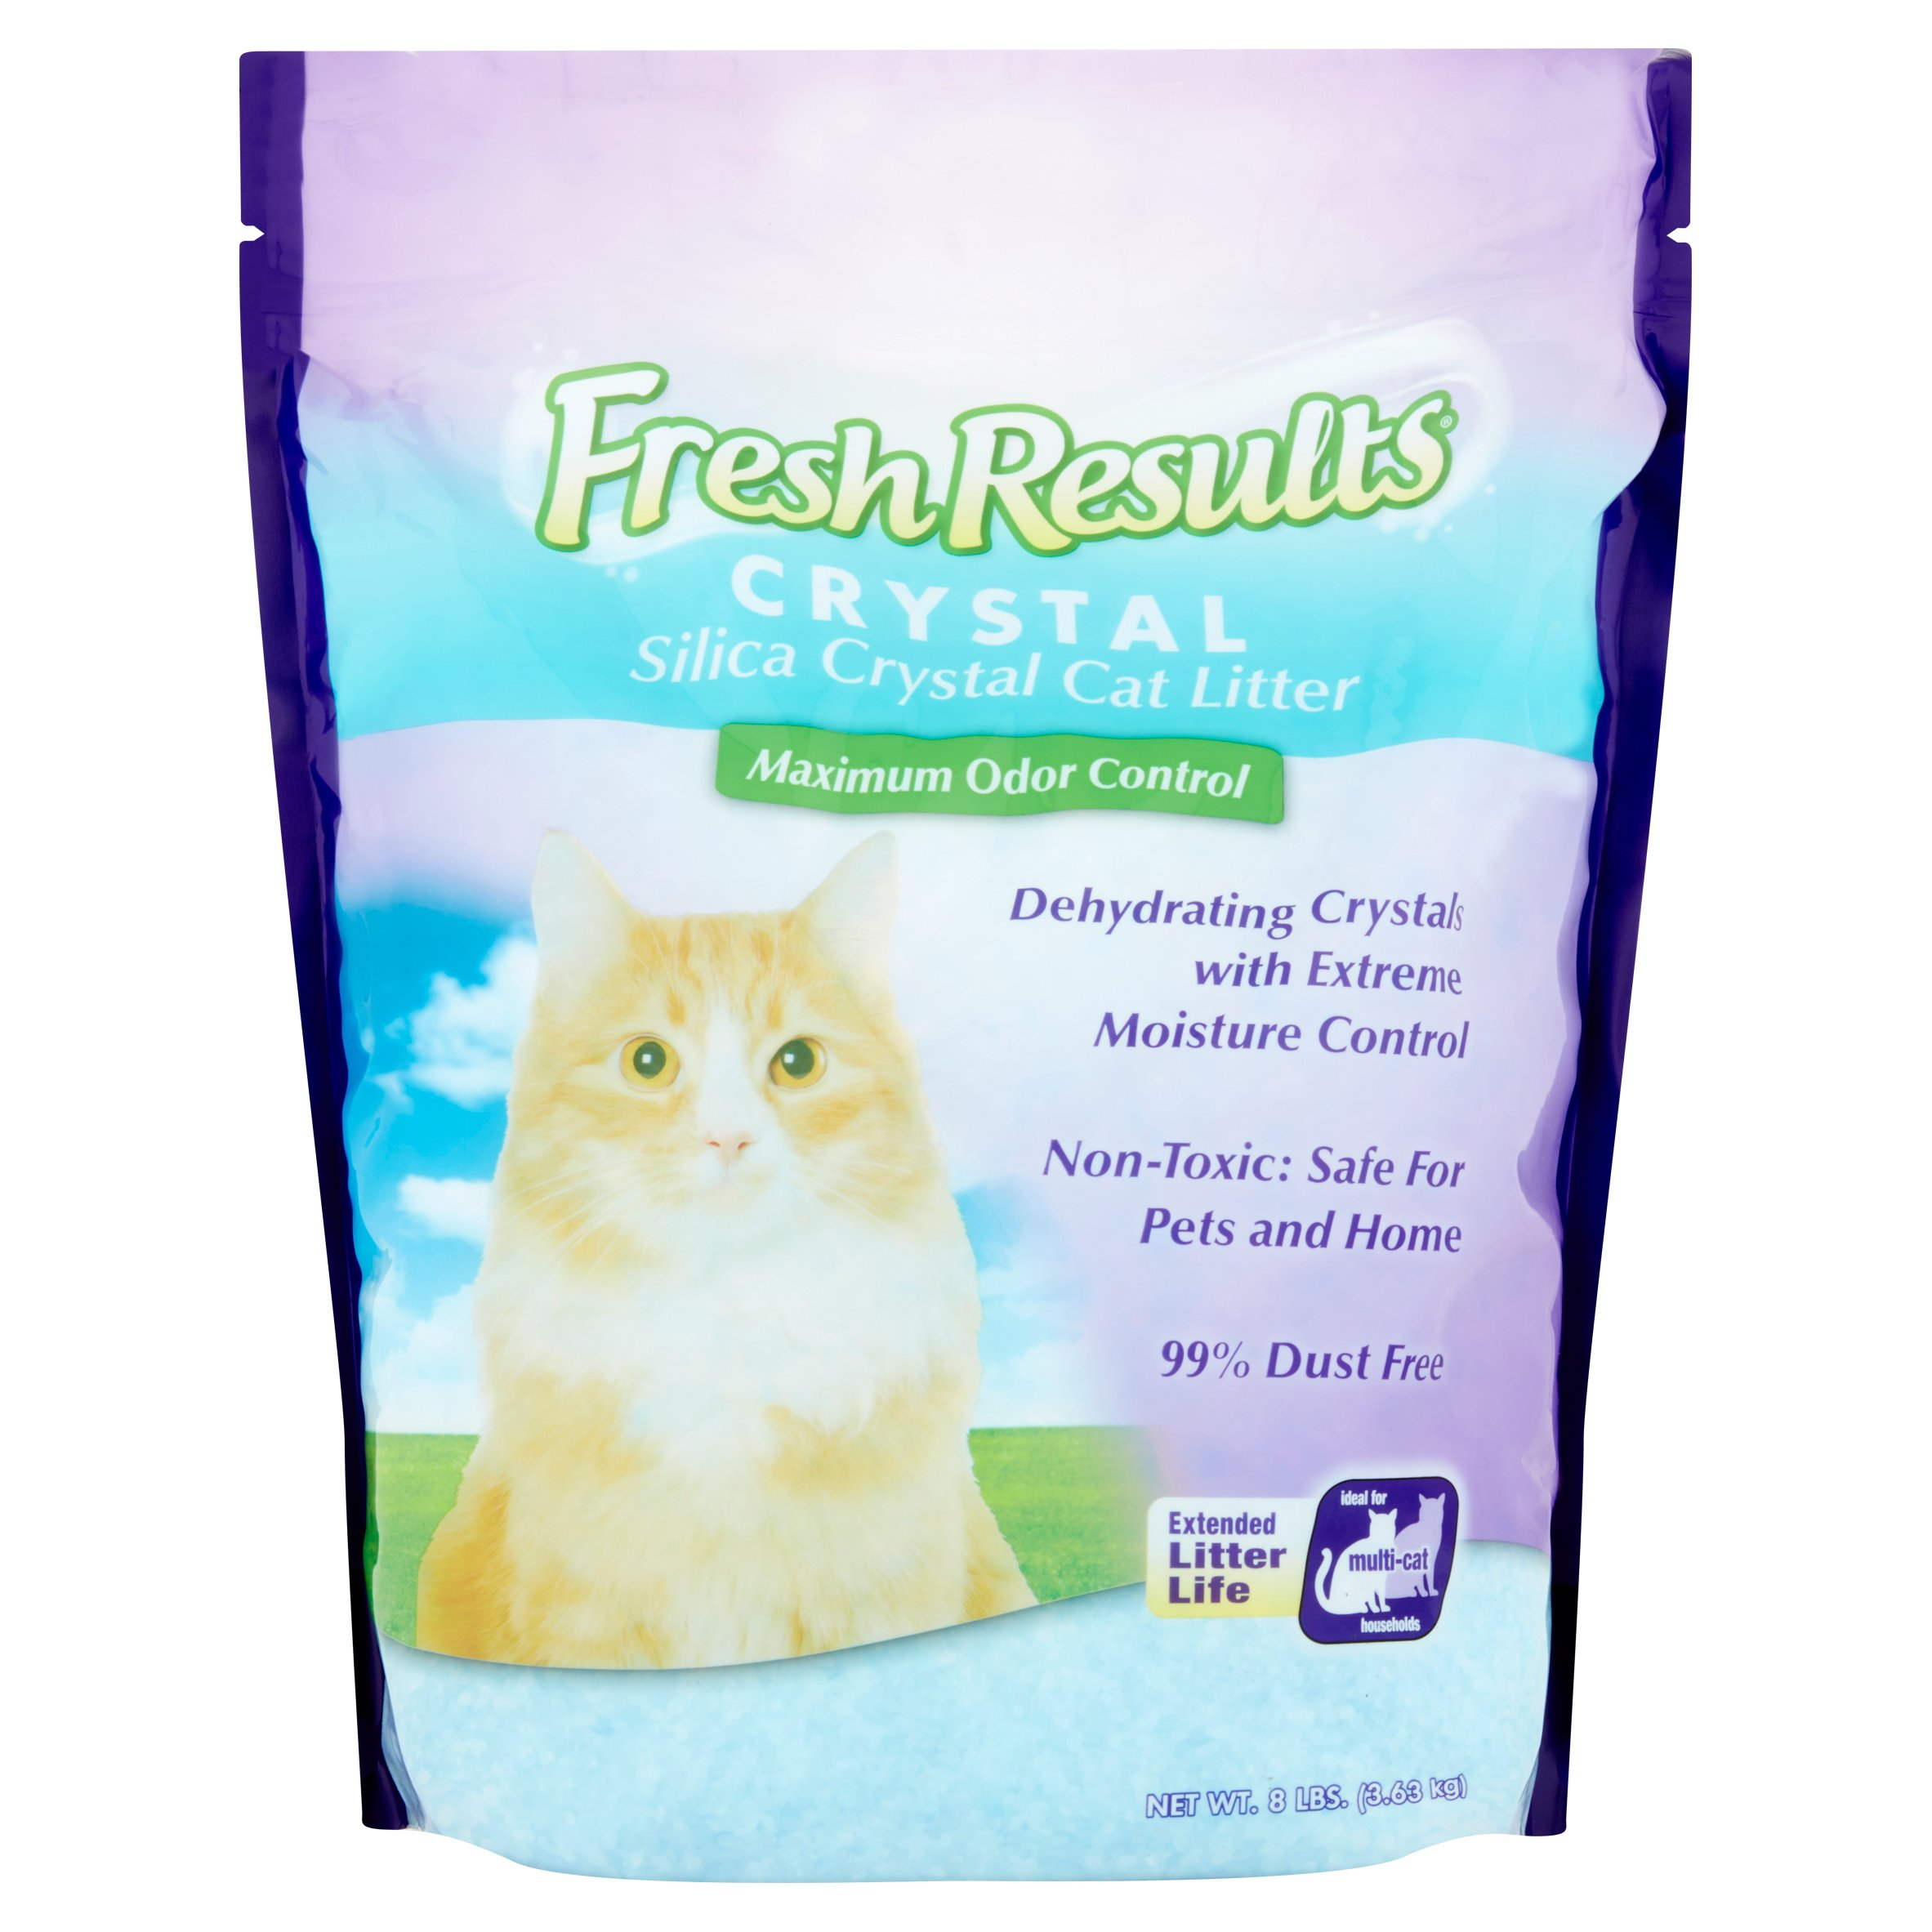 Fresh Results Crystal Cat Litter, 8 lbs